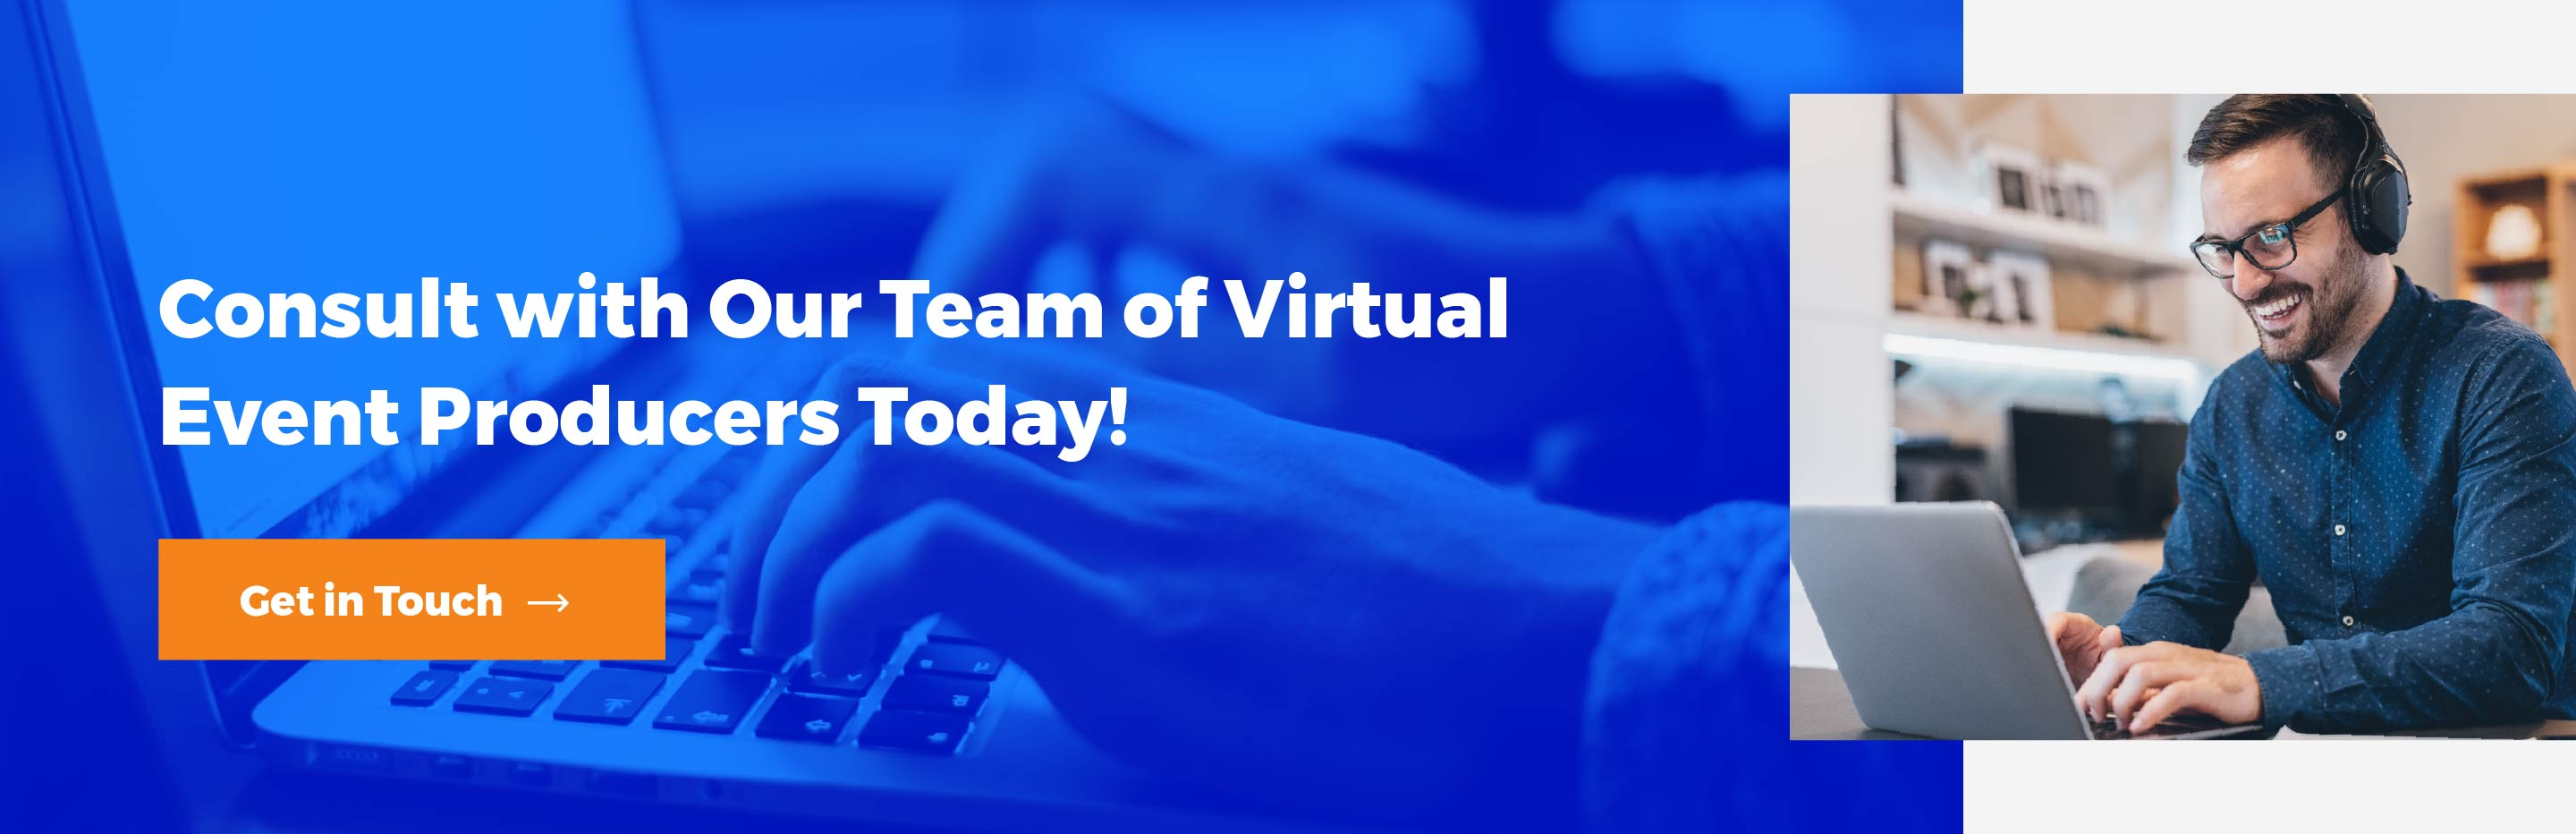 Get in touch to consult with our team of virtual event producers today!